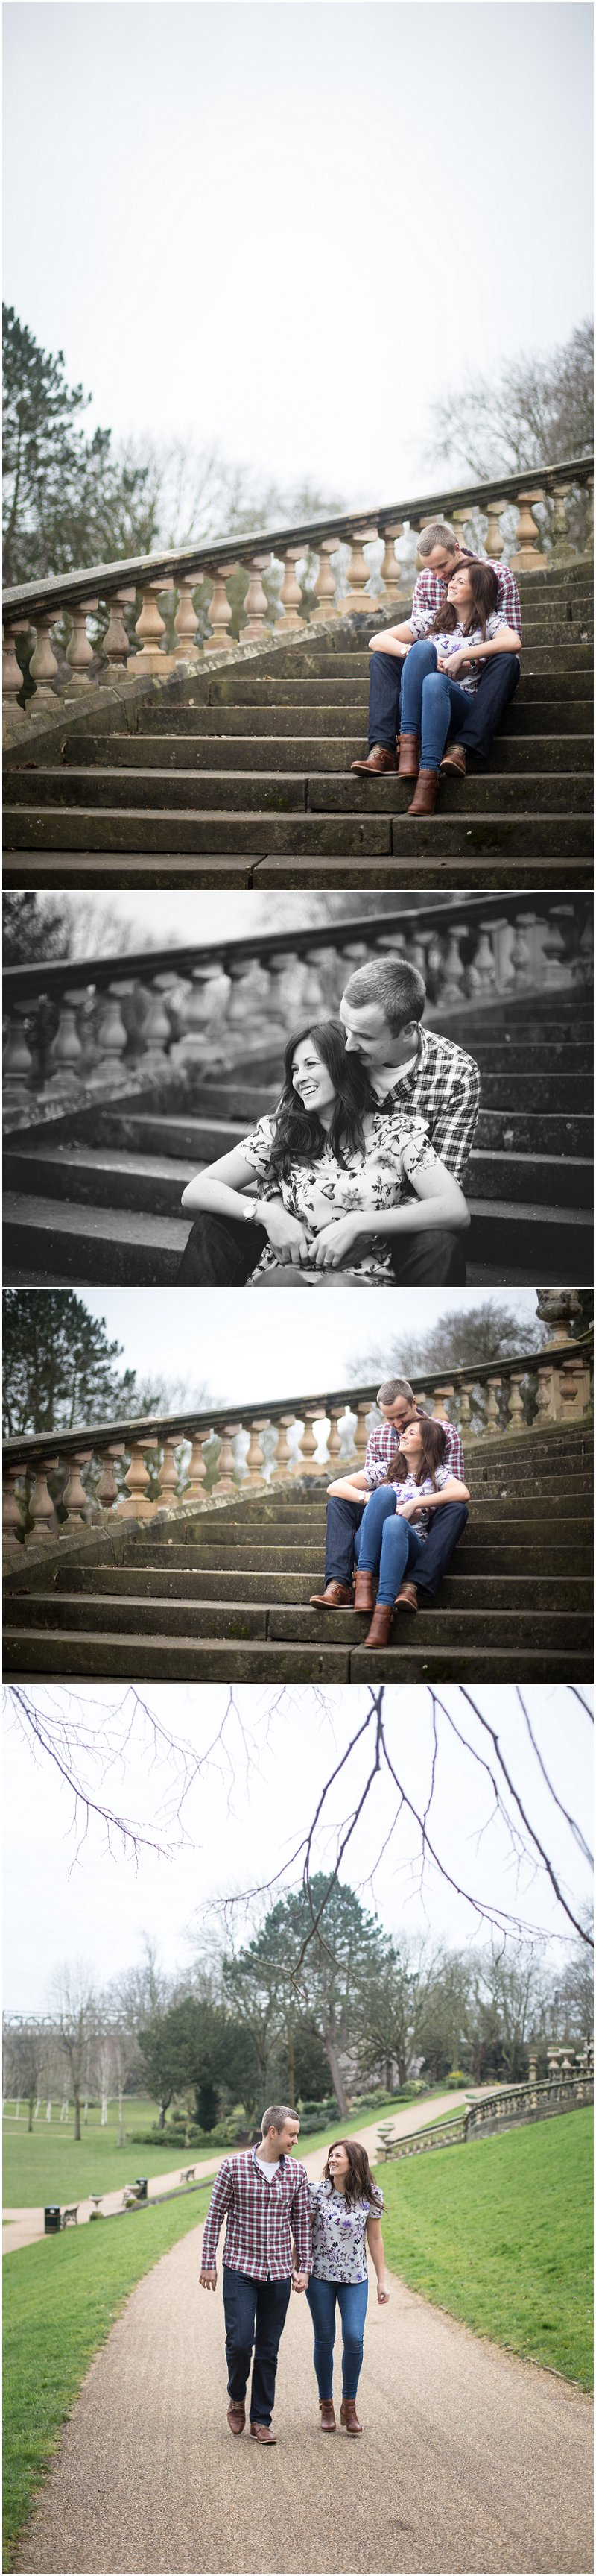 Engaged couple enjoying pre wedding shoot preston